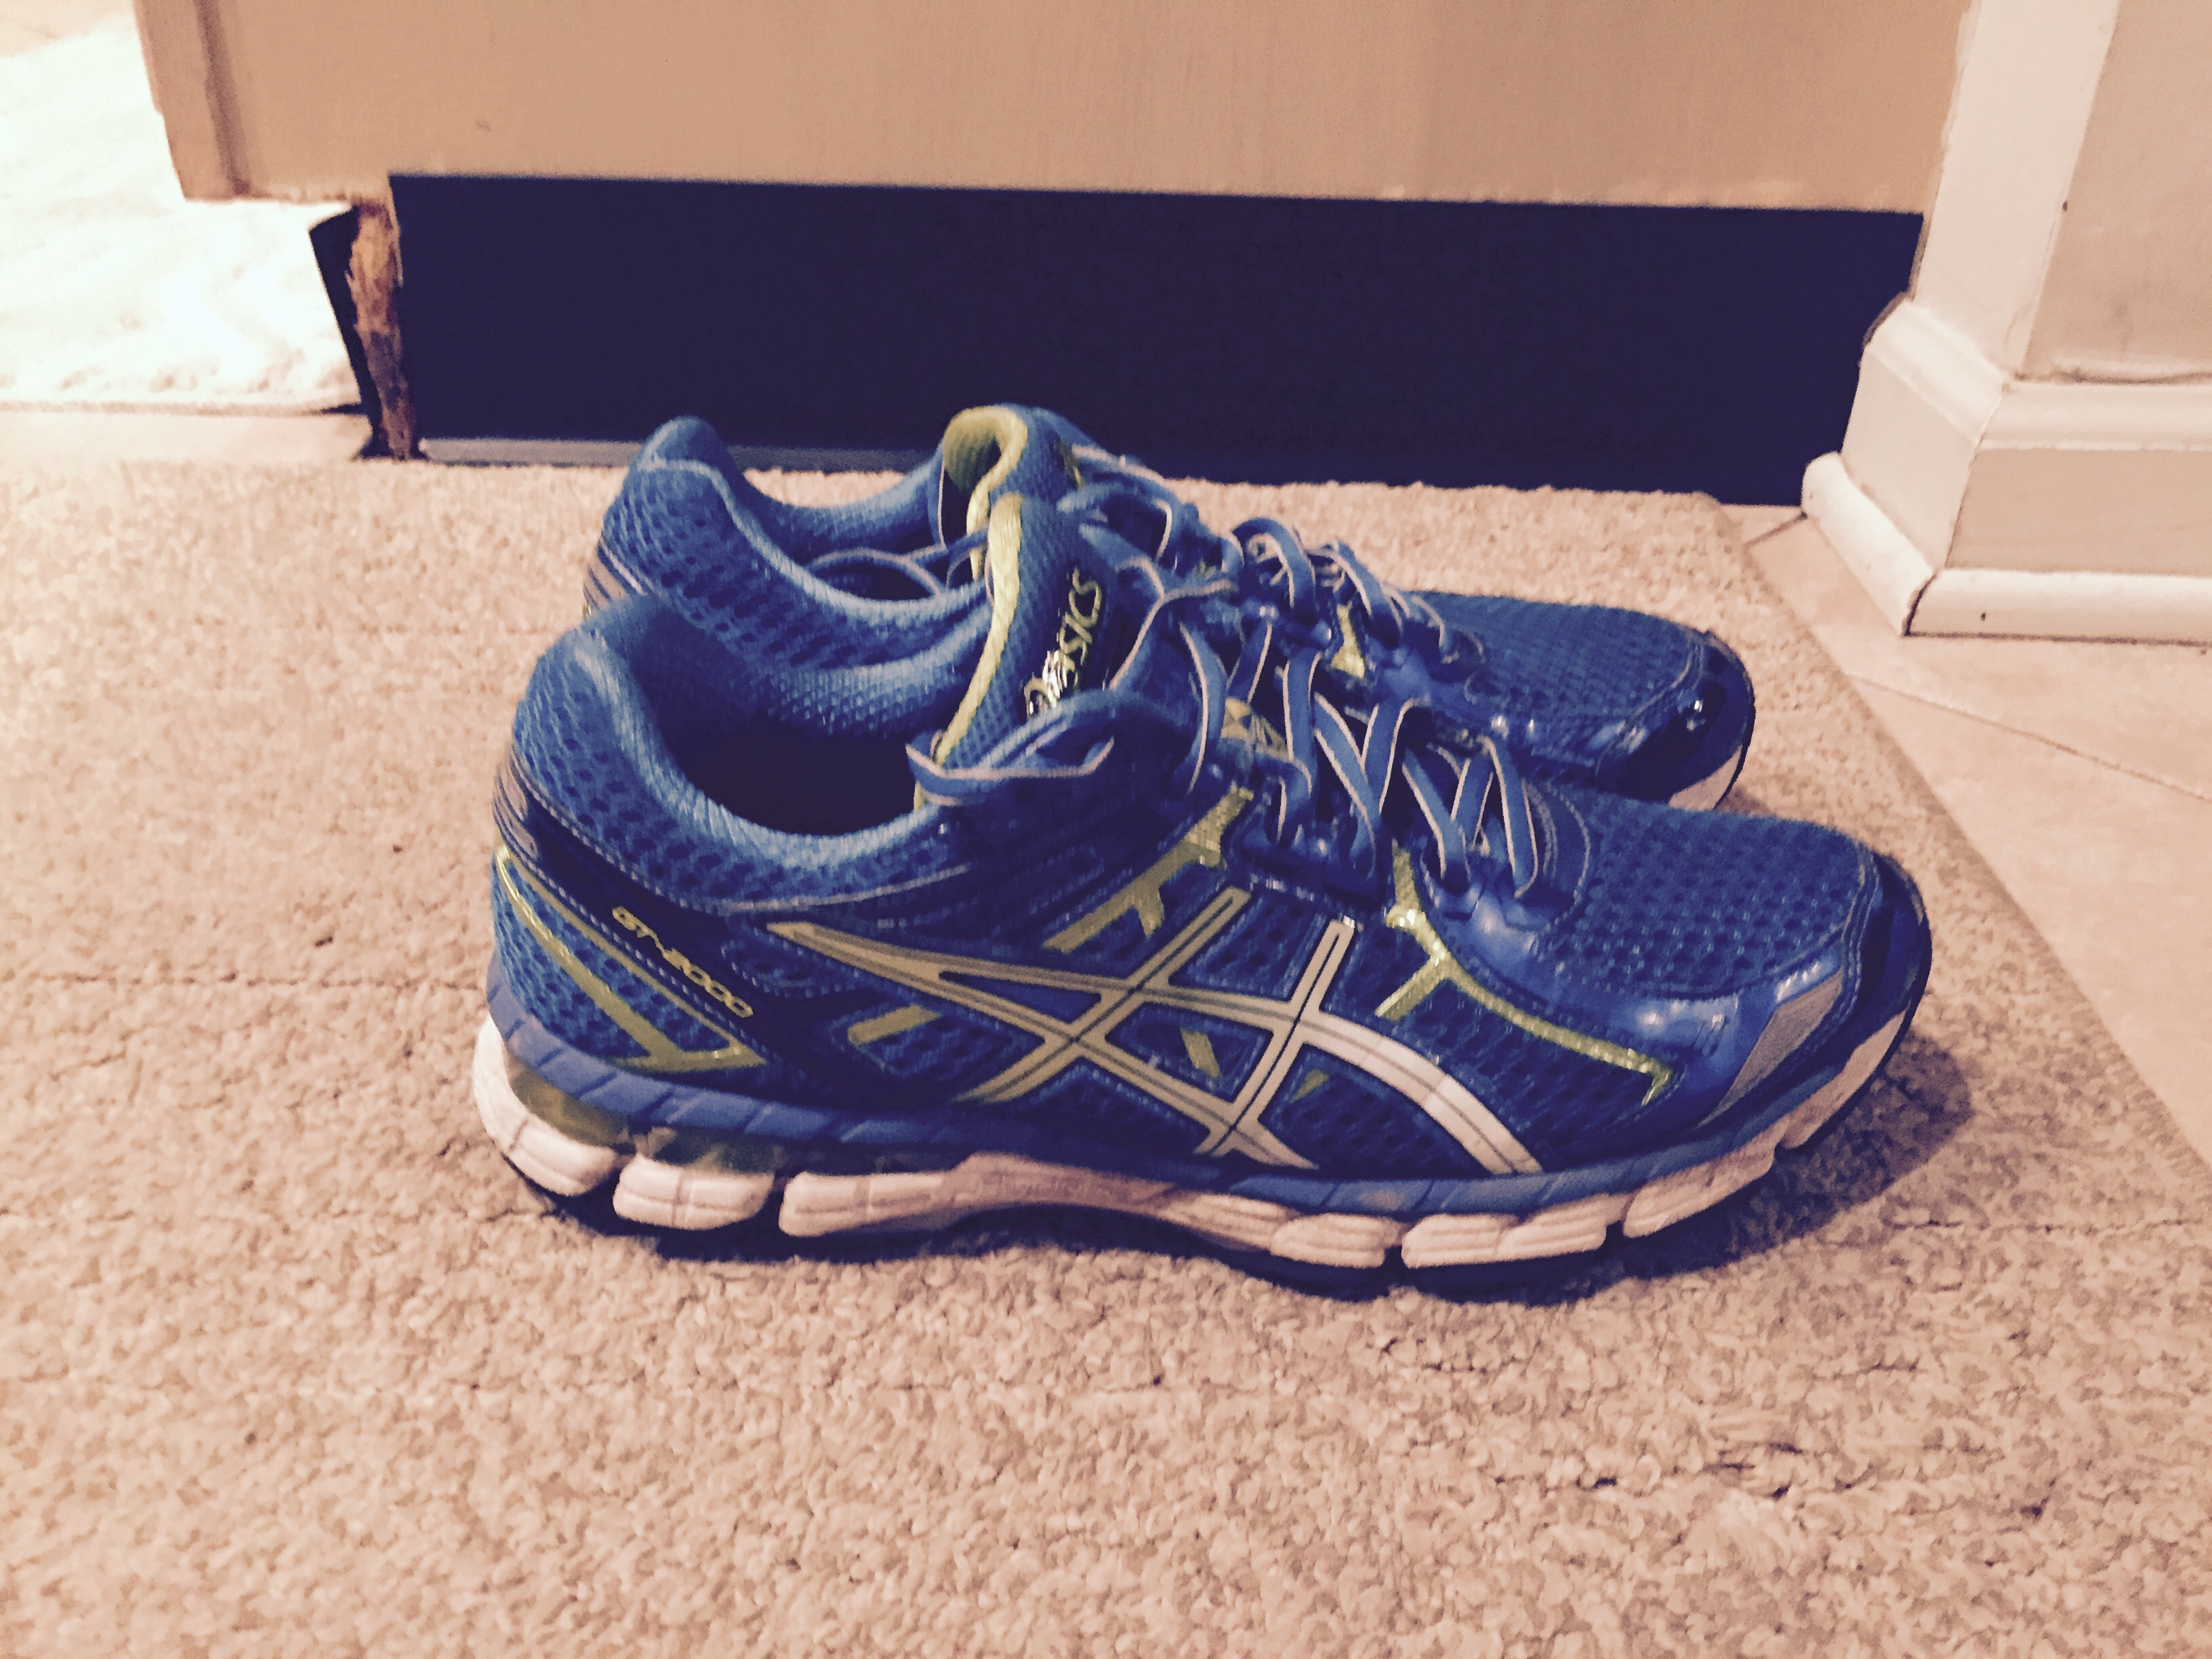 My dads Asics that are durable,stylish, comfortable and have helped fix his knee